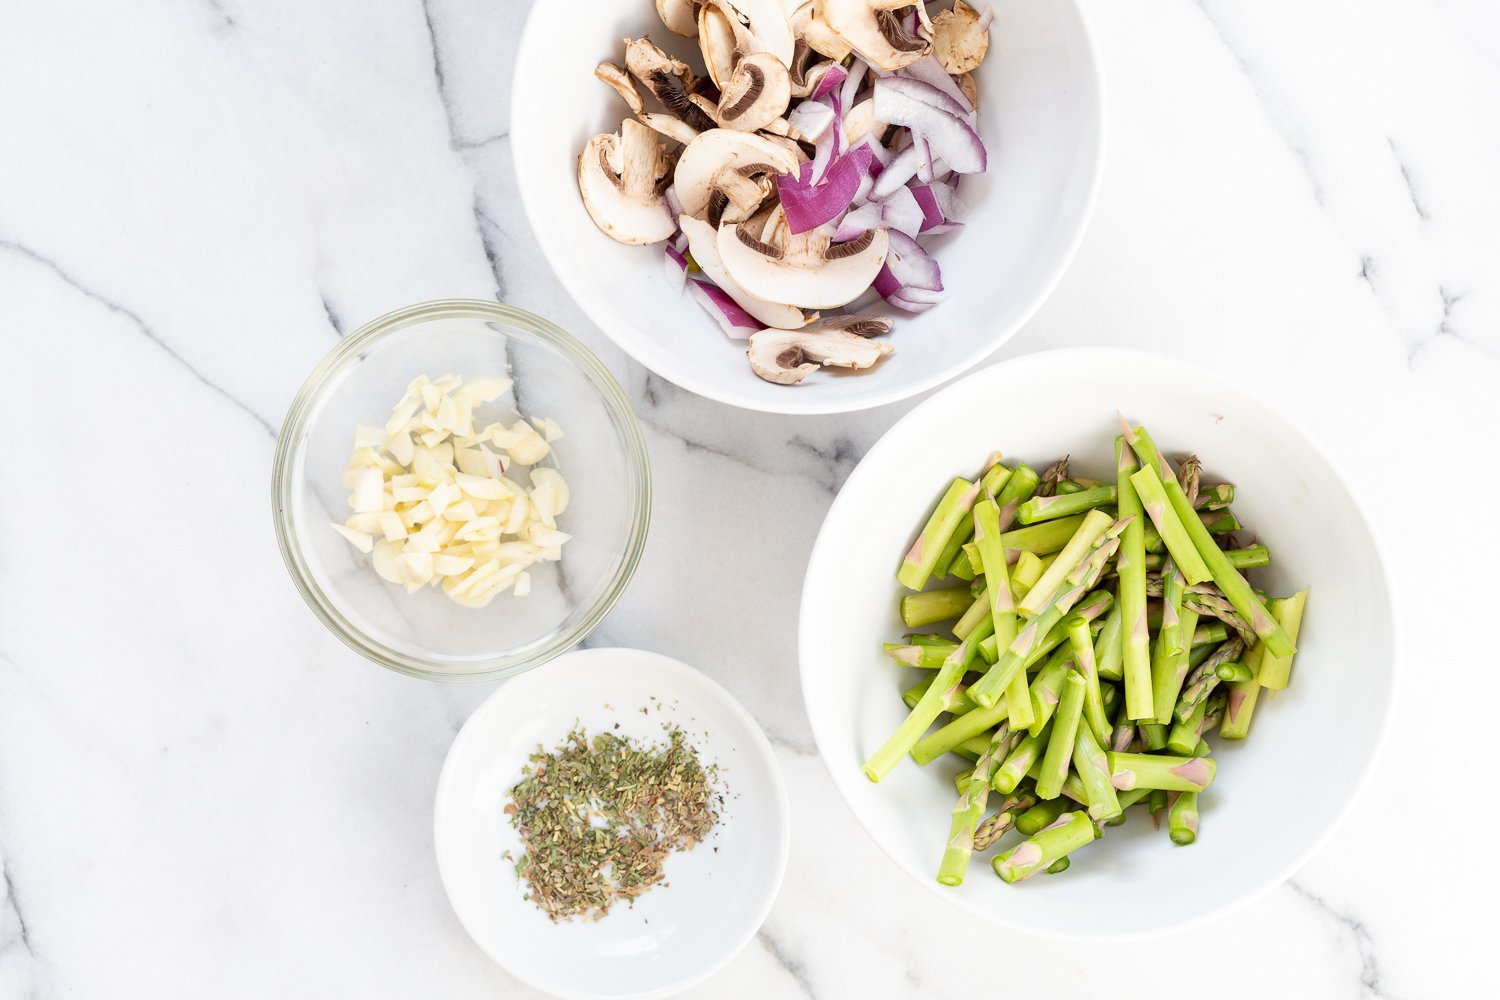 Ingredients in bowls for our Vegan Lemon Asparagus Pasta